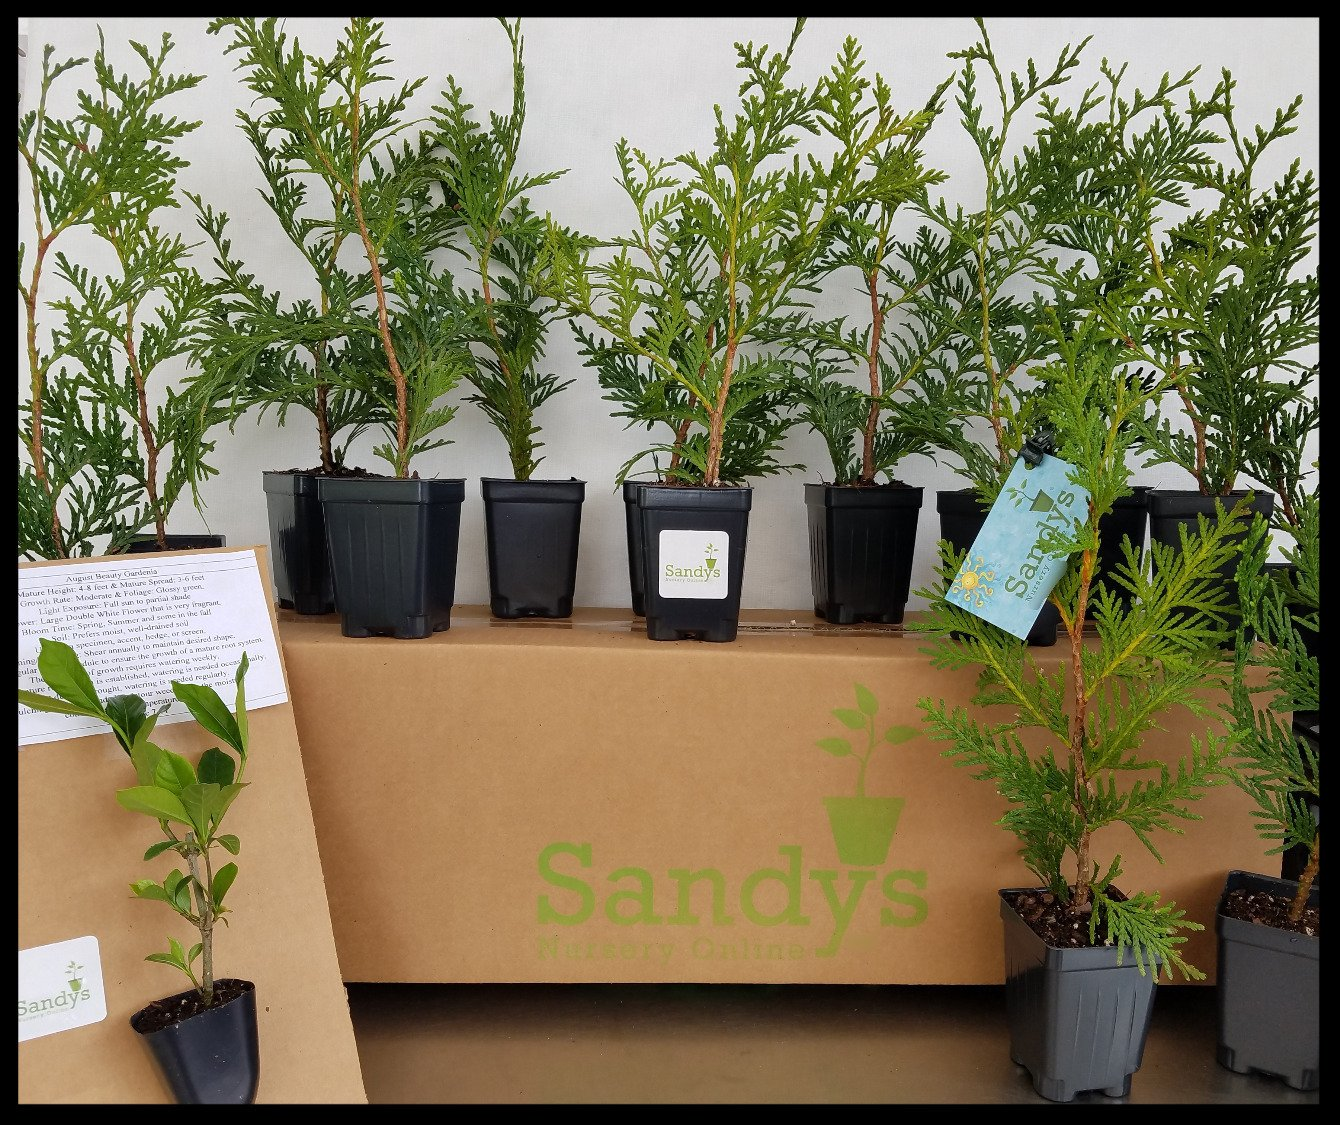 Amazon.com : Sandys Nursery Online Thuja Green Giant Arborvitae Live Plants  Lot of 30 Trees - Ships in 3 inch deep pots 10-14 inches Tall with Soil +  (1) ...